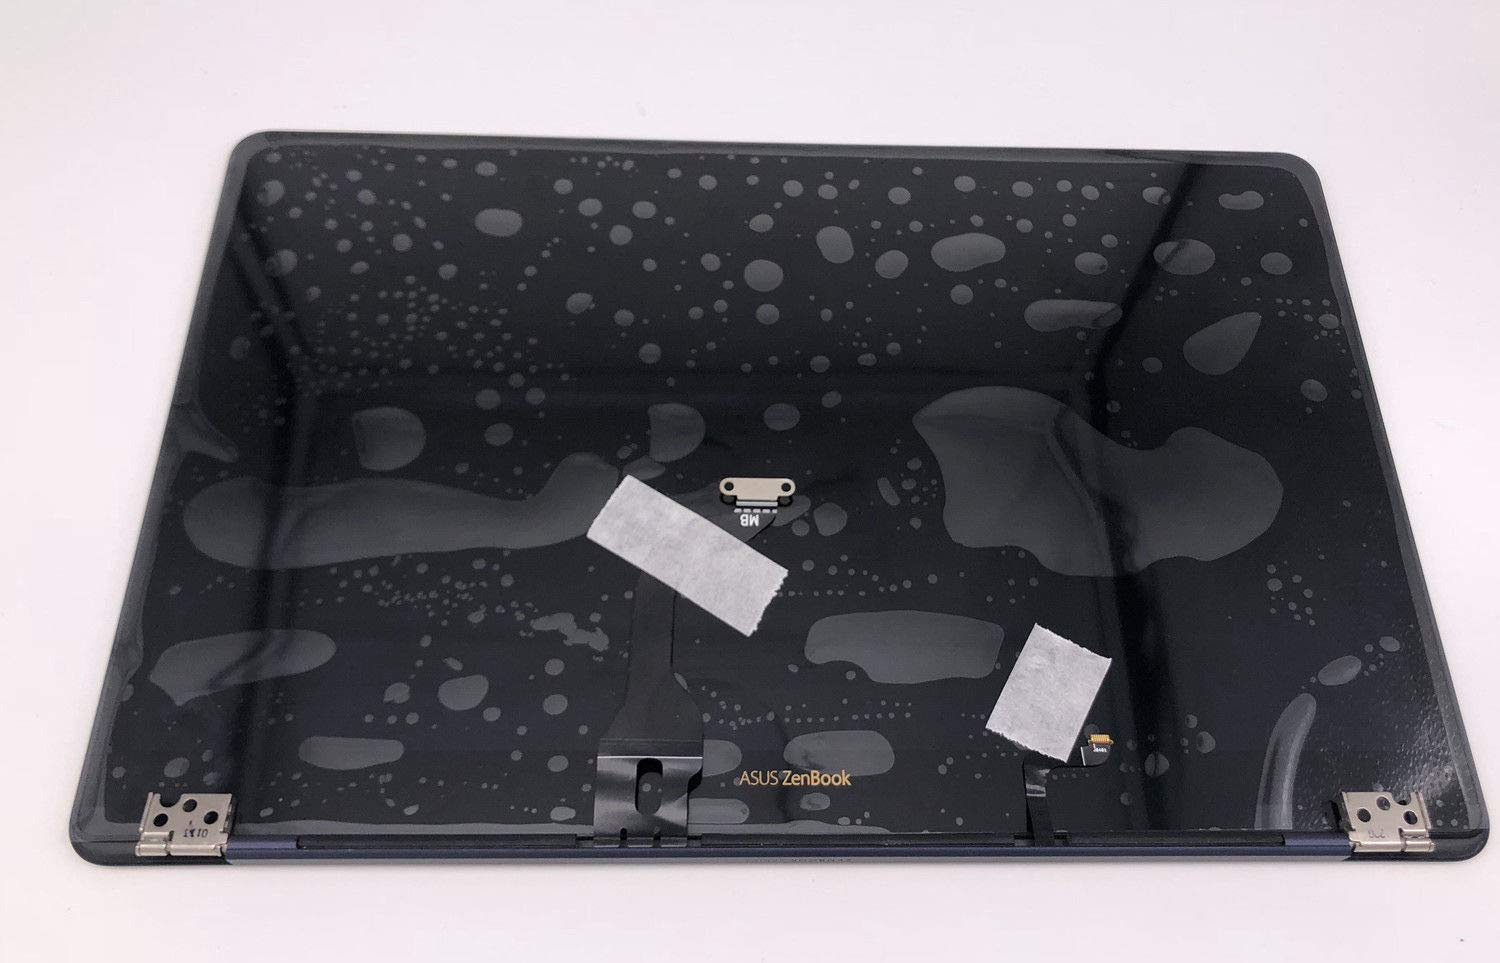 New Replacement 14'' FHD (1920x1080) LCD Screen IPS LED Display + Bezel Frame + Cover Complete Upper top Part Full Assembly with Cable Fit Asus ZenBook UX490UA